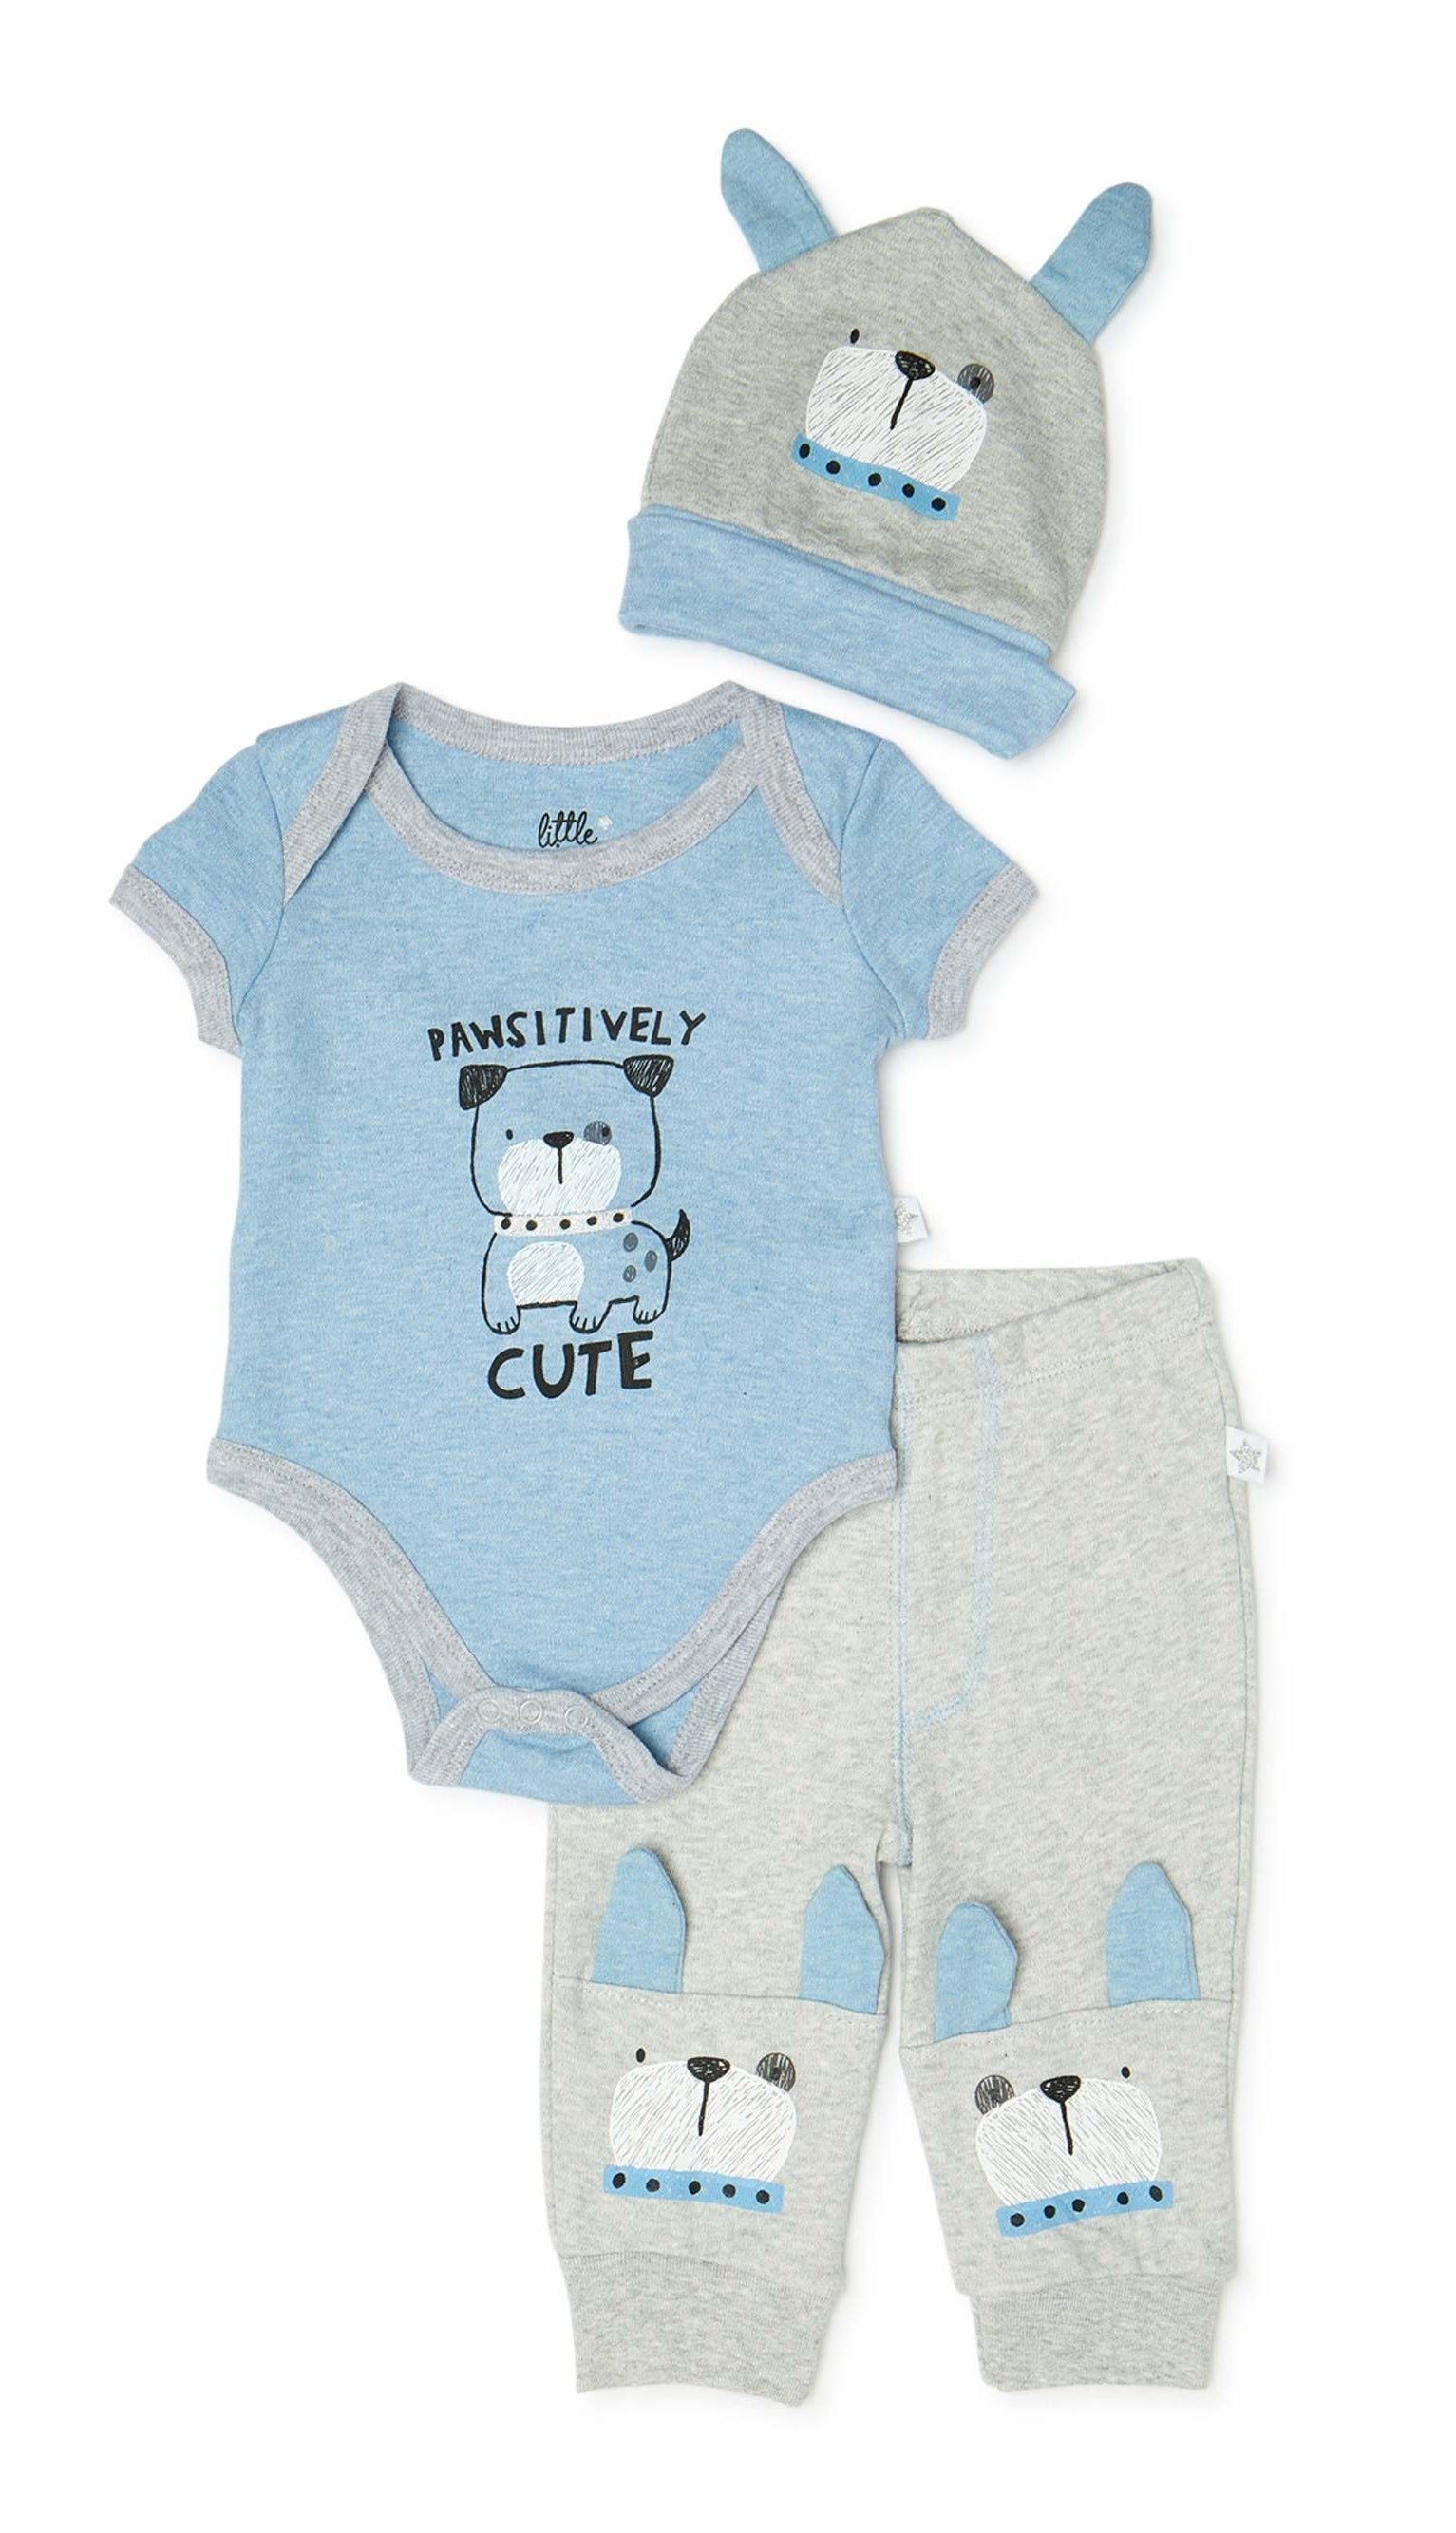 The blue and grey hat, bodysuit, and pants